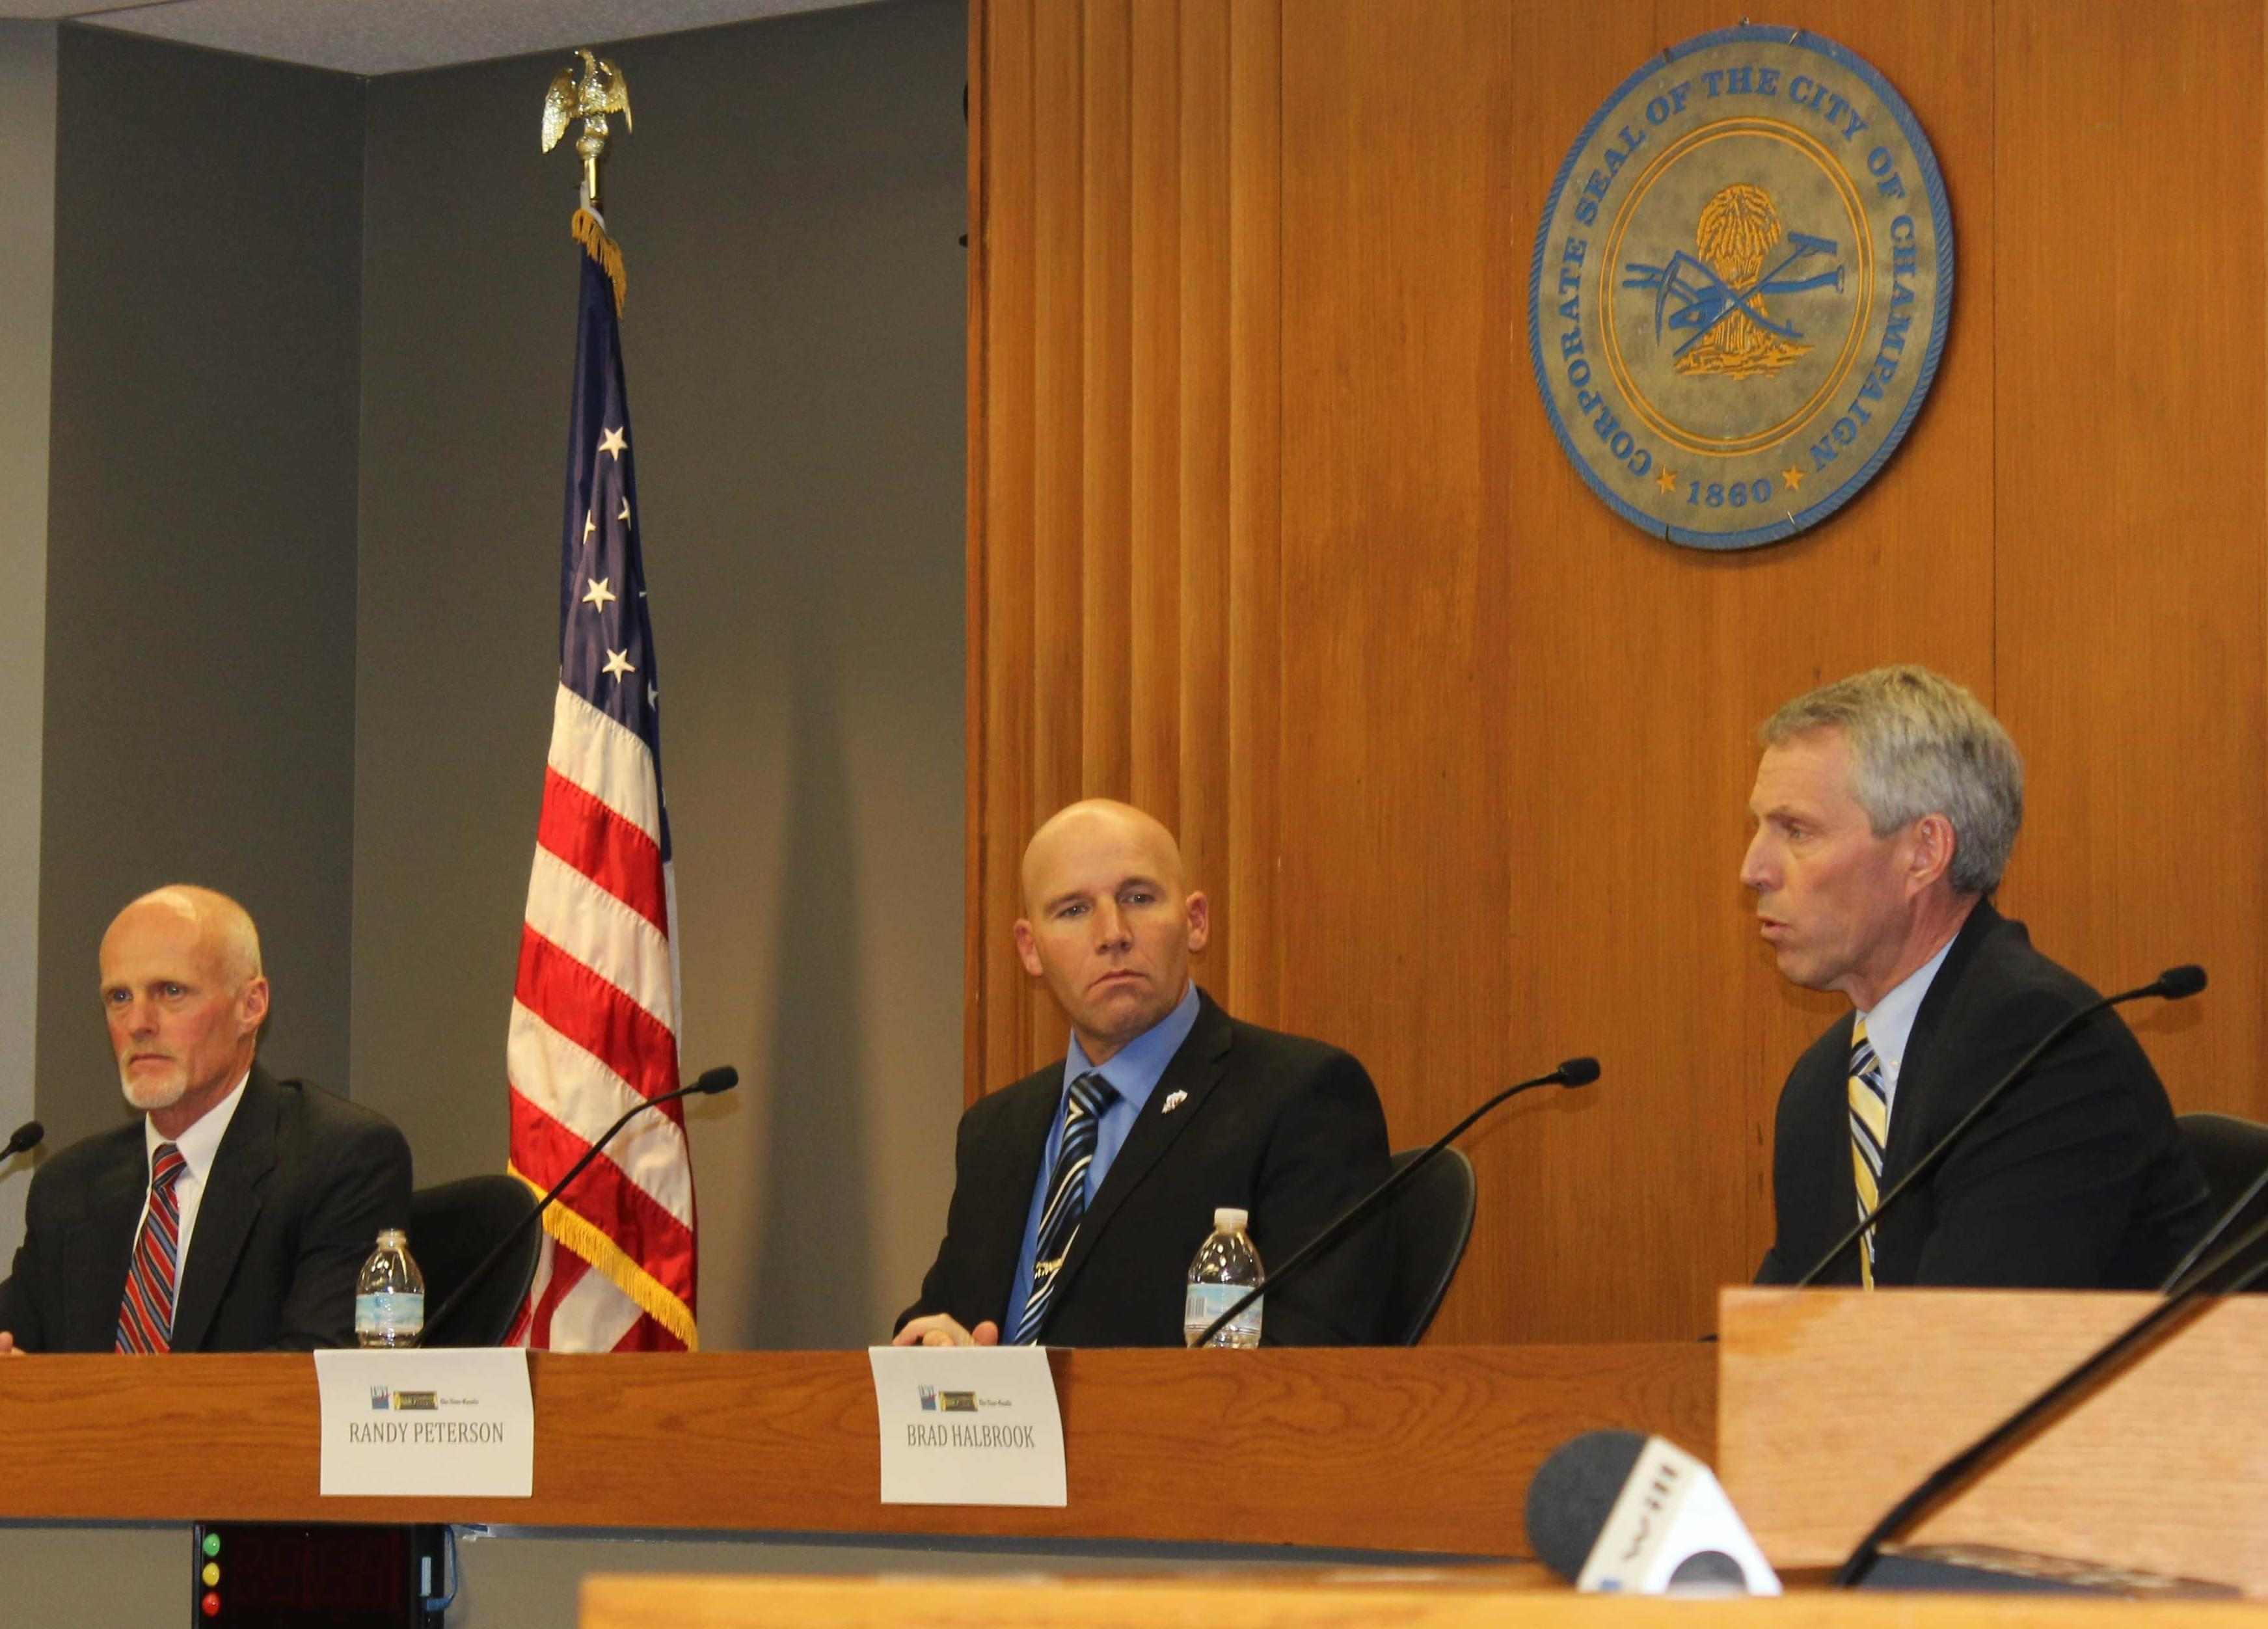 Randy Peterson (middle) debates fellow candidates Jim Acklin (left) and Brad Halbrook for Illinois' 102nd District House race at the Champaign City Building February 17.